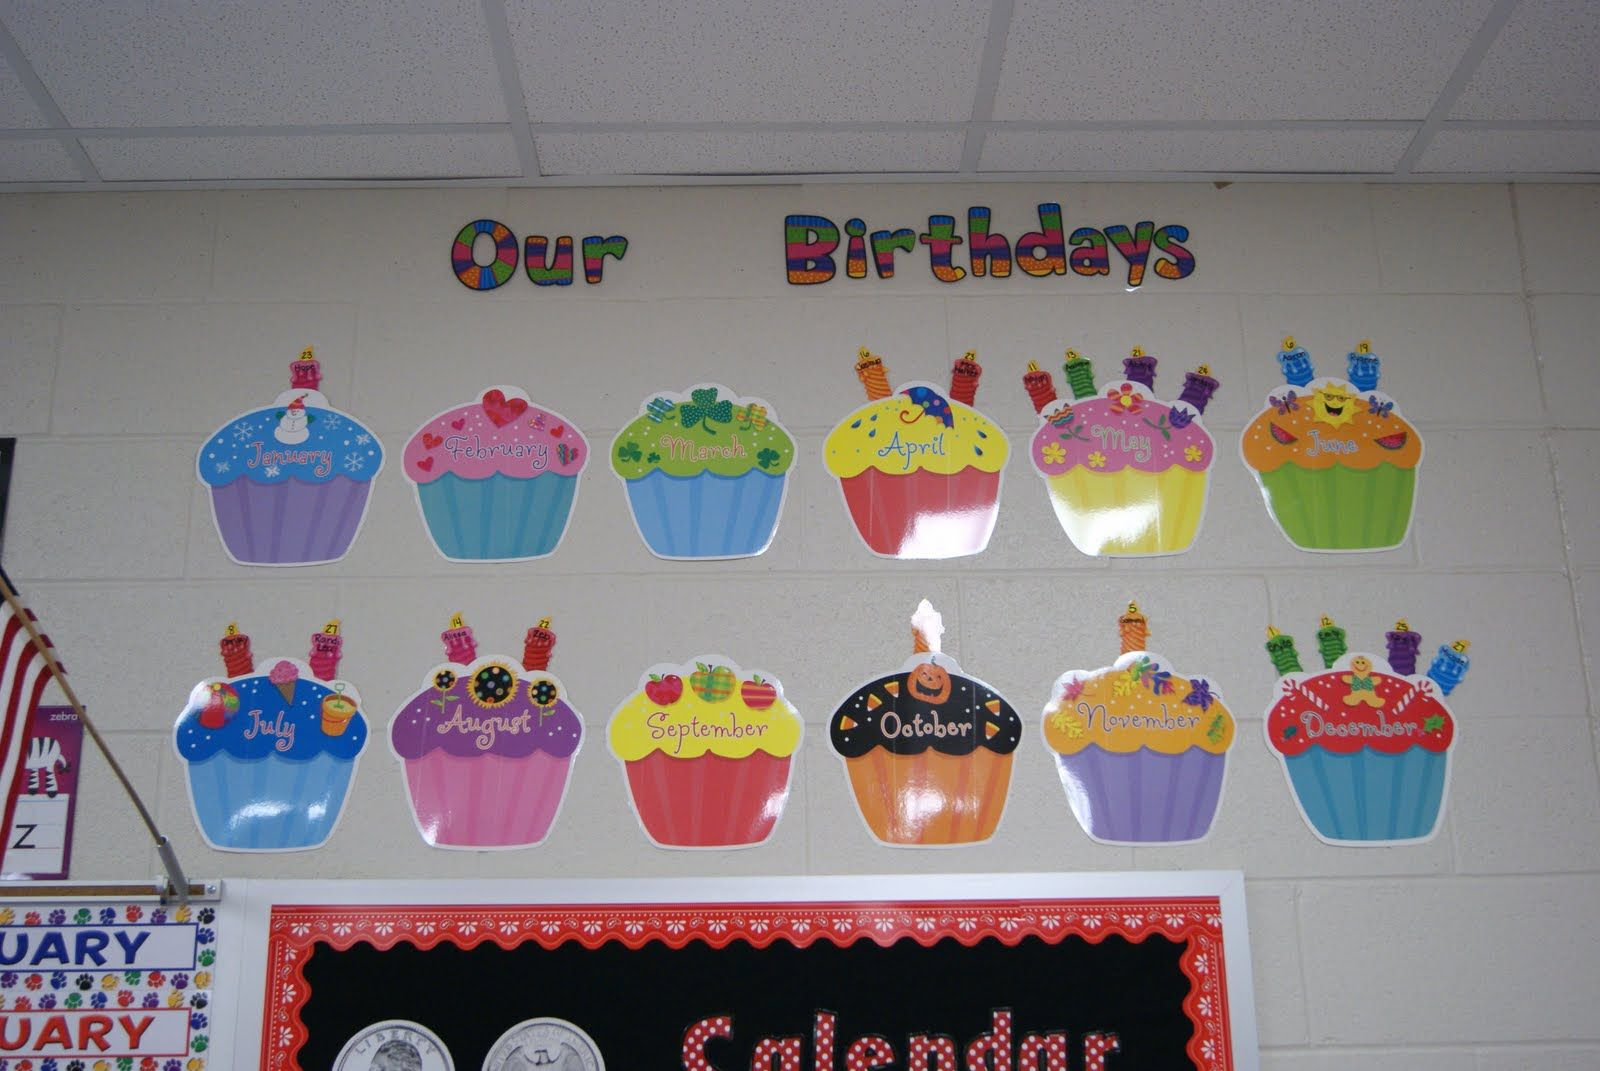 Birthday cupcakes to go on the calendar, so everyone knows when to wish each other a happy birthday!